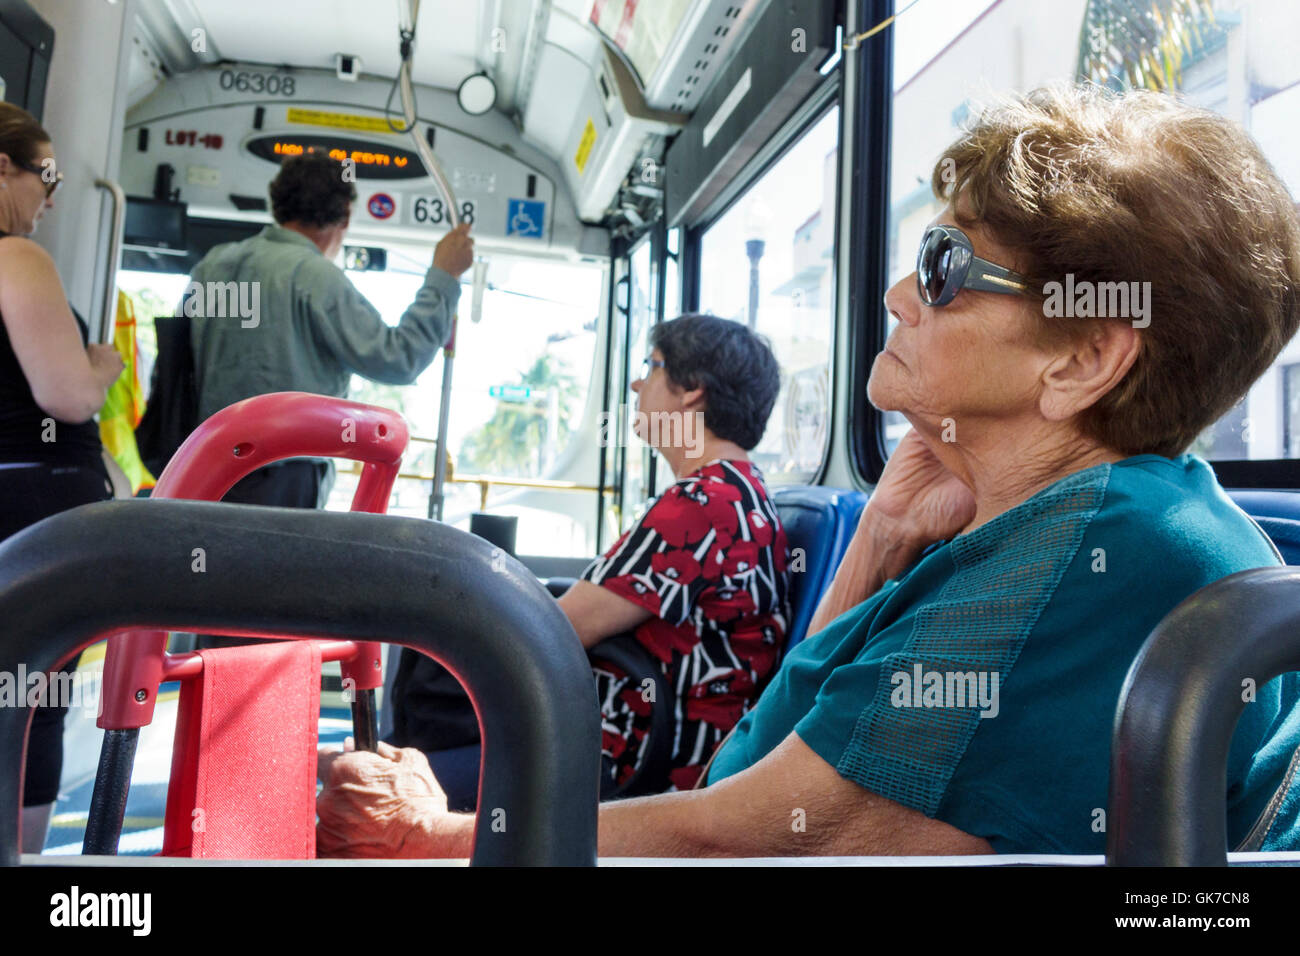 7ea588ccaaf Miami Florida Beach South Beach Local Miami Dade Metrobus mass transit  public transportation bus Hispanic woman